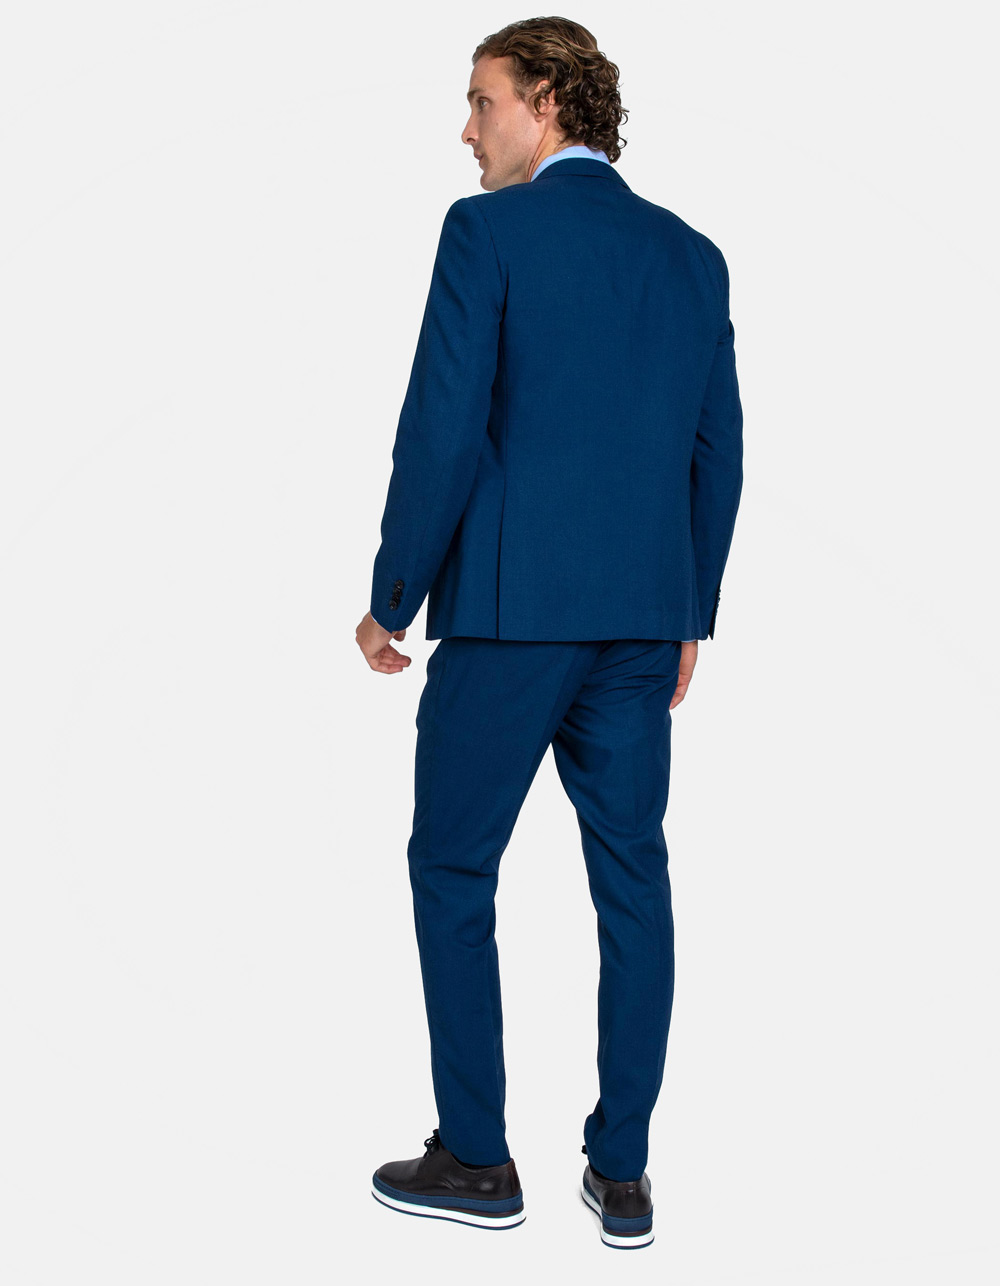 Blue plain suit - Backside